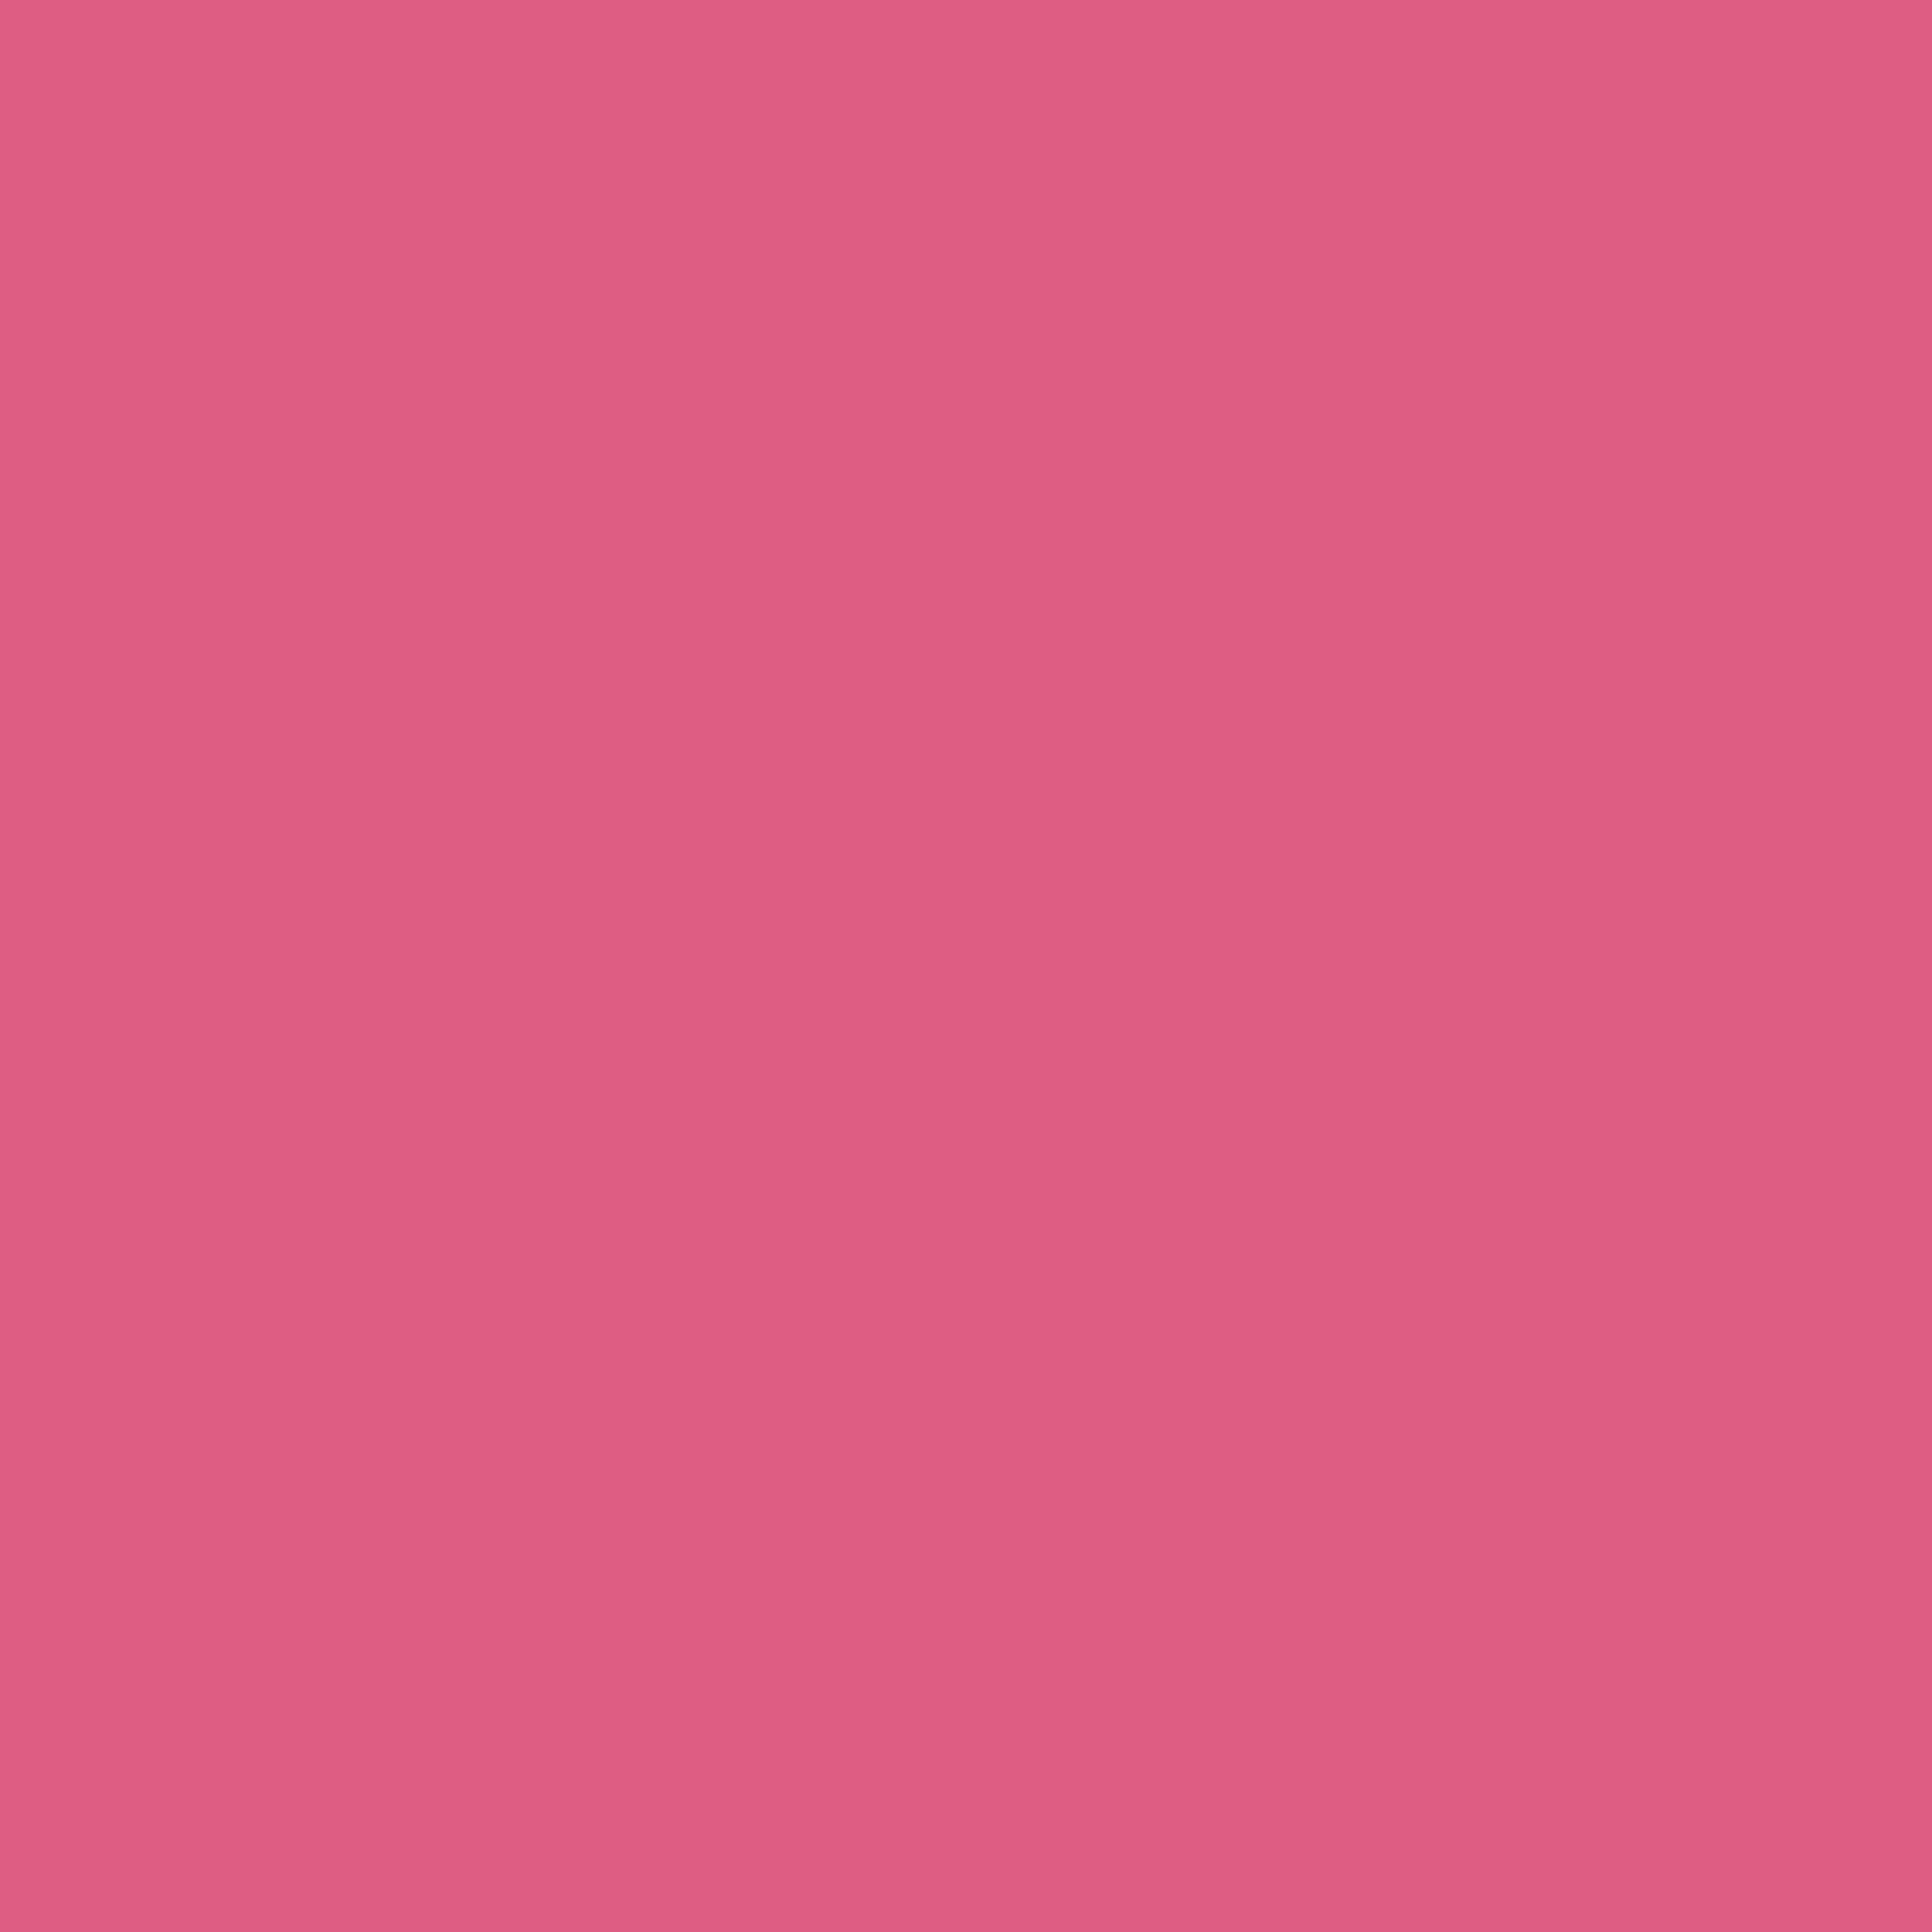 3600x3600 Blush Solid Color Background